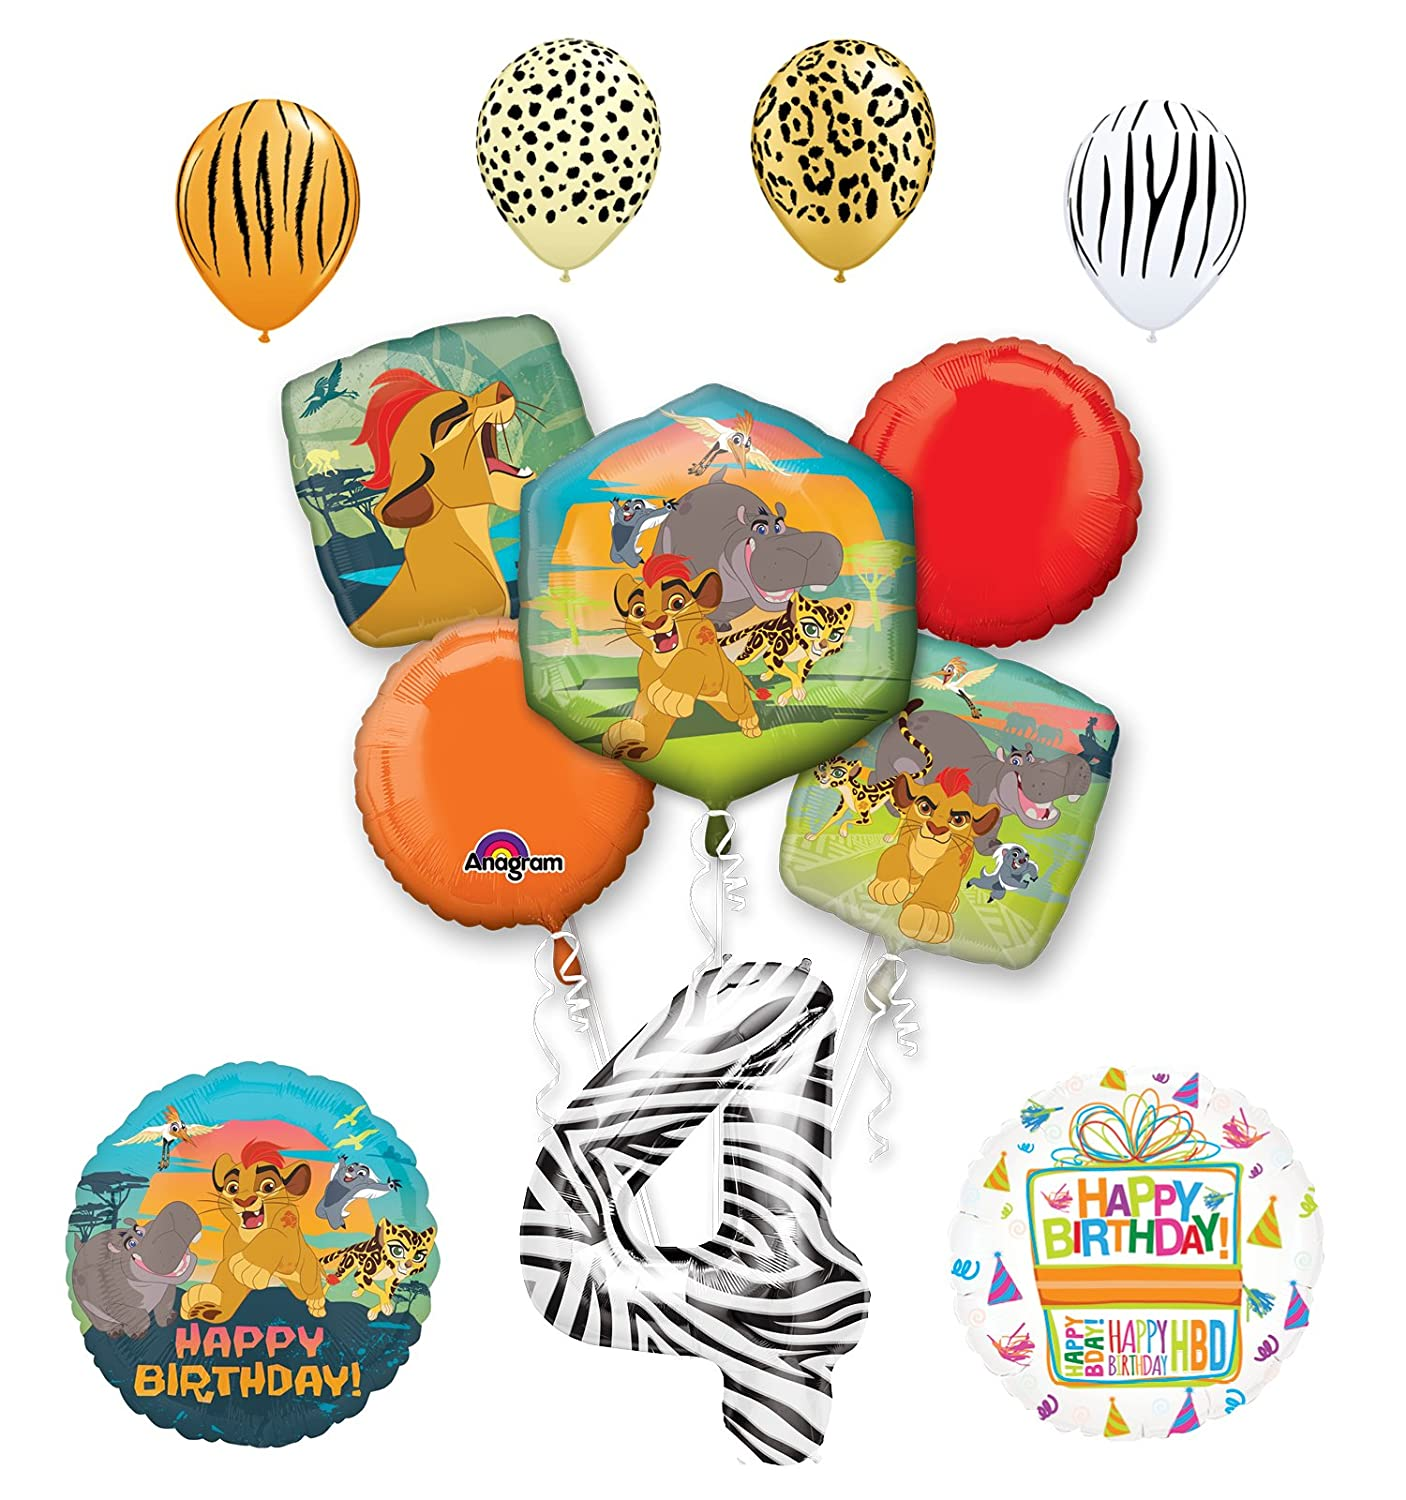 Amazon Lion Guard Party Supplies 4th Birthday Balloon Bouquet Decorations Toys Games